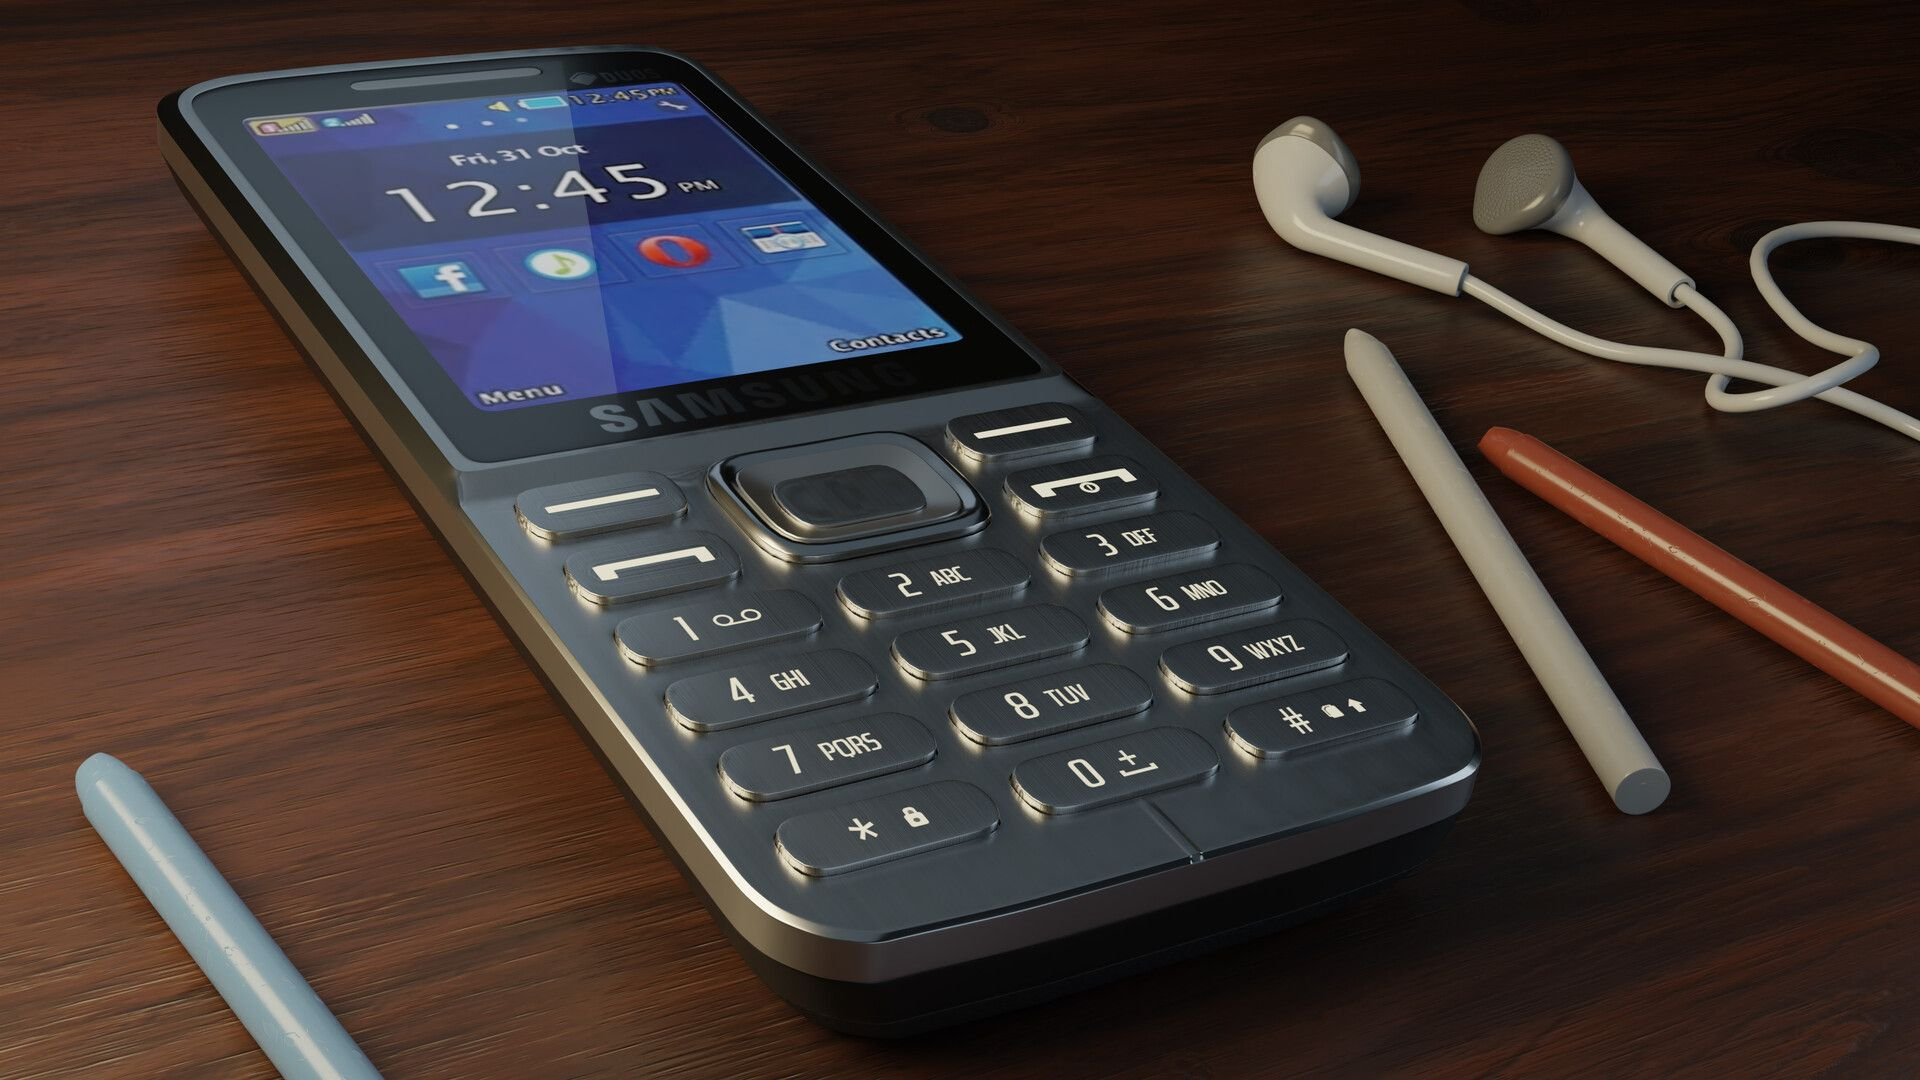 Samsung Metro 360 By Nehal Ahmadmy Old Phone Modeled Using Blender 2 8 Beta And Rendered In Cycles And Eevee Old Work Before Old Phone Blackberry Phone Phone